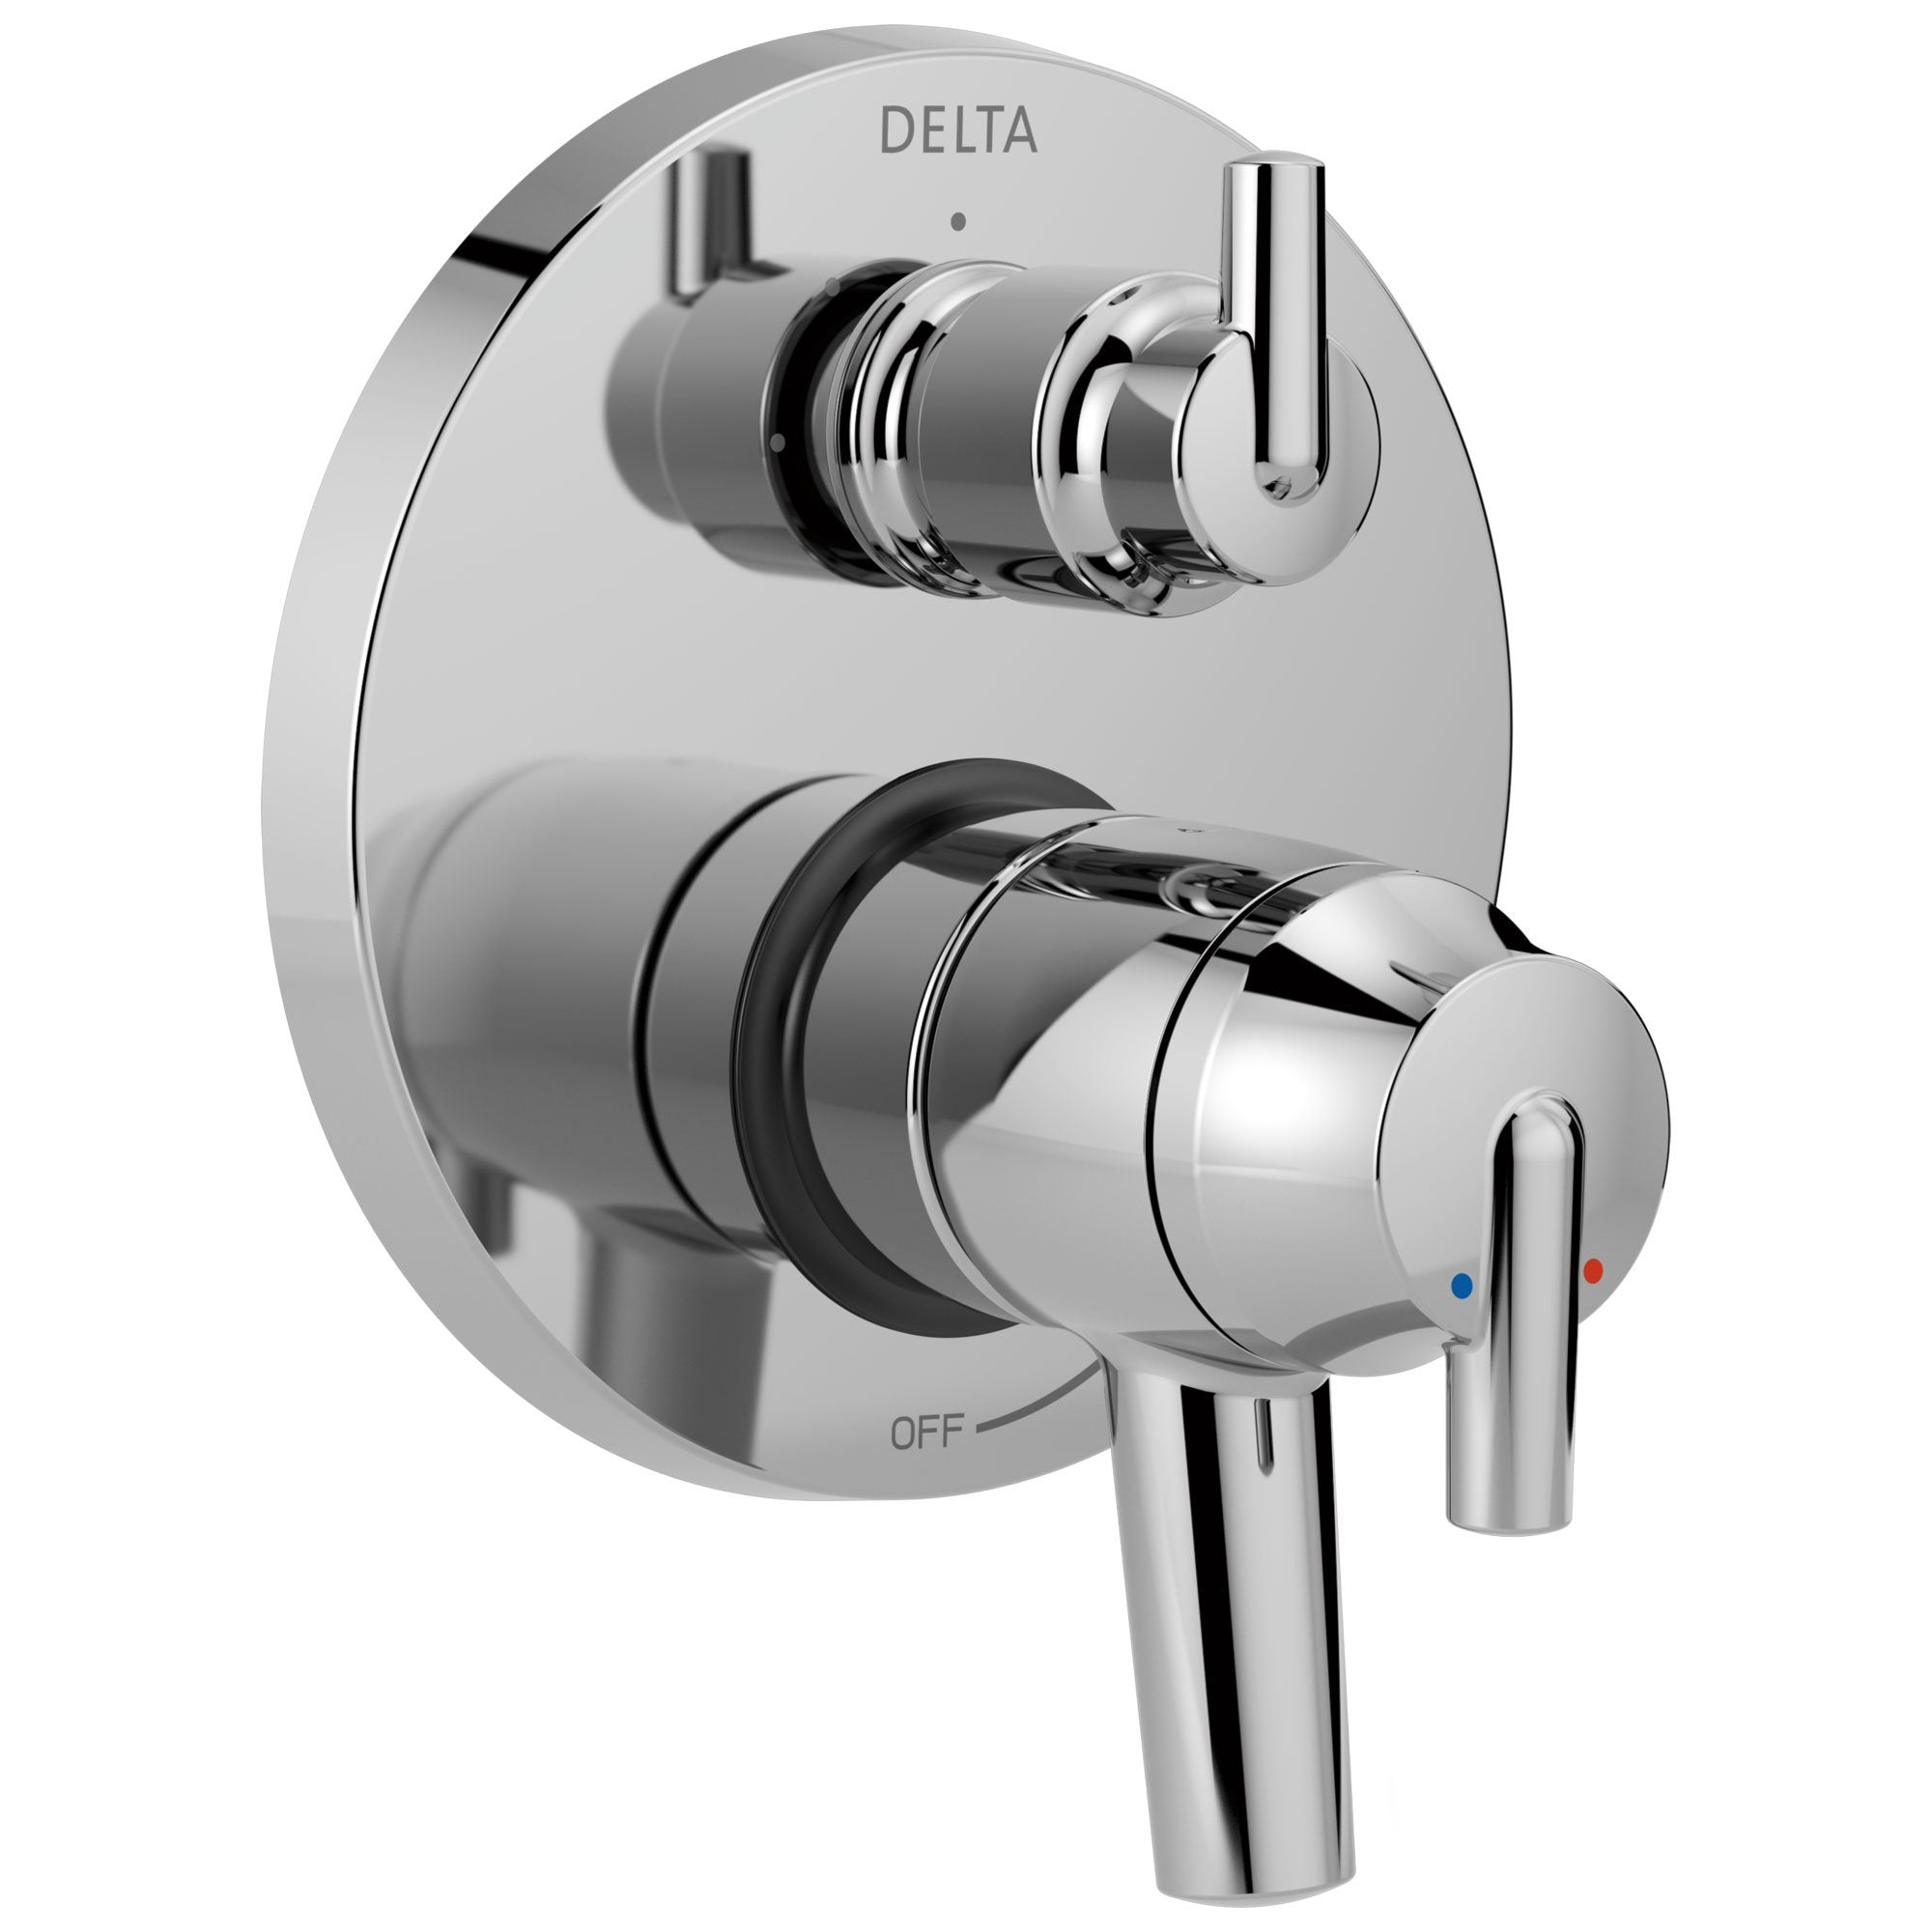 Delta Trinsic Chrome Contemporary Monitor 17 Shower Faucet Control Handle with 3-Setting Integrated Diverter Includes Trim Kit and Valve with Stops D2180V